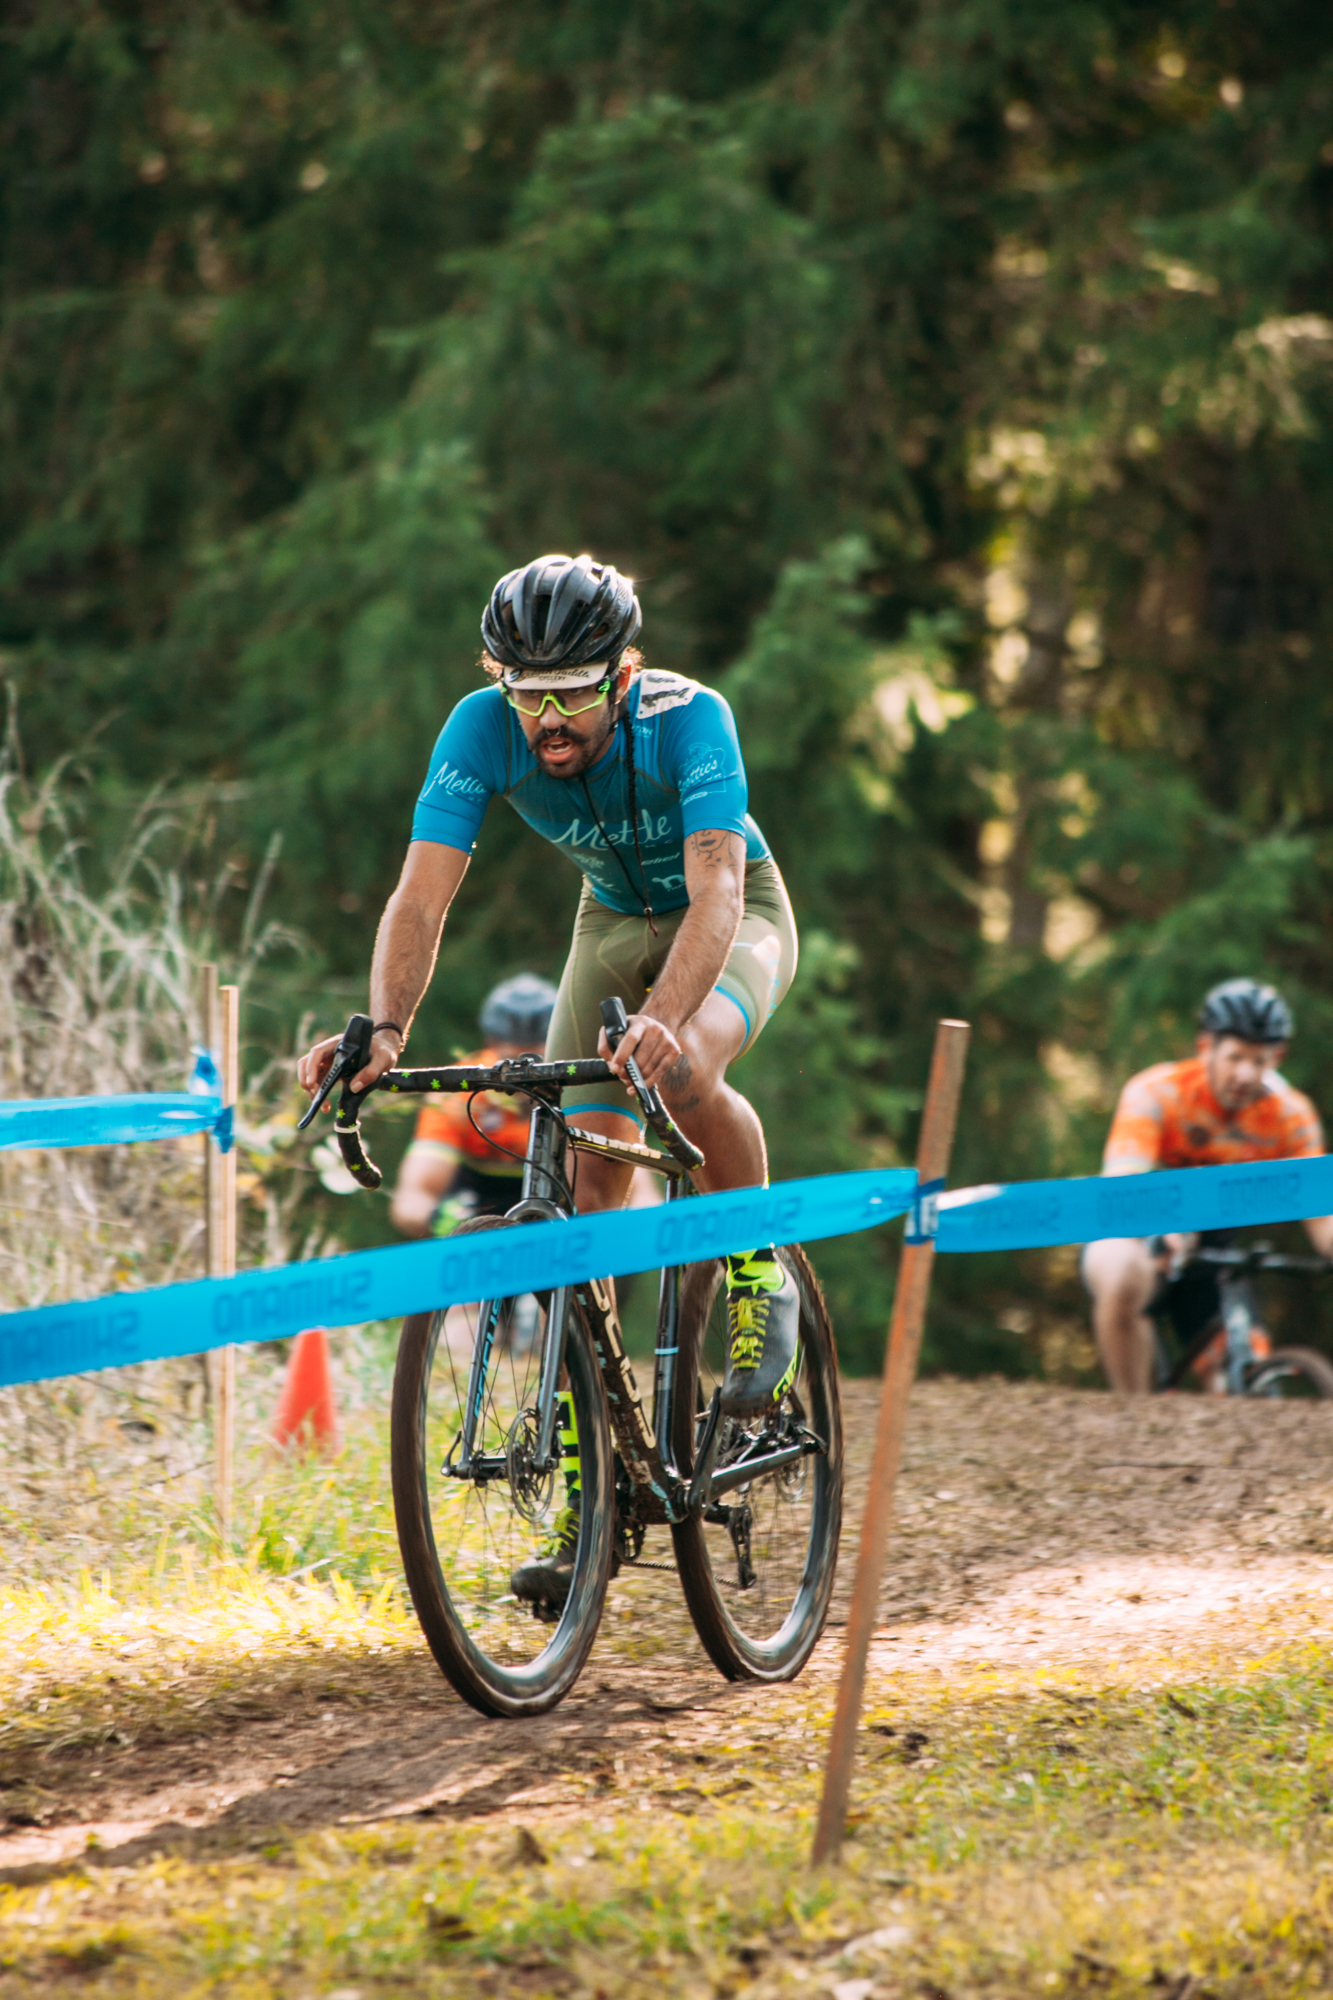 Cyclocross18_CCCX_RainierHS-138-mettlecycling.jpg